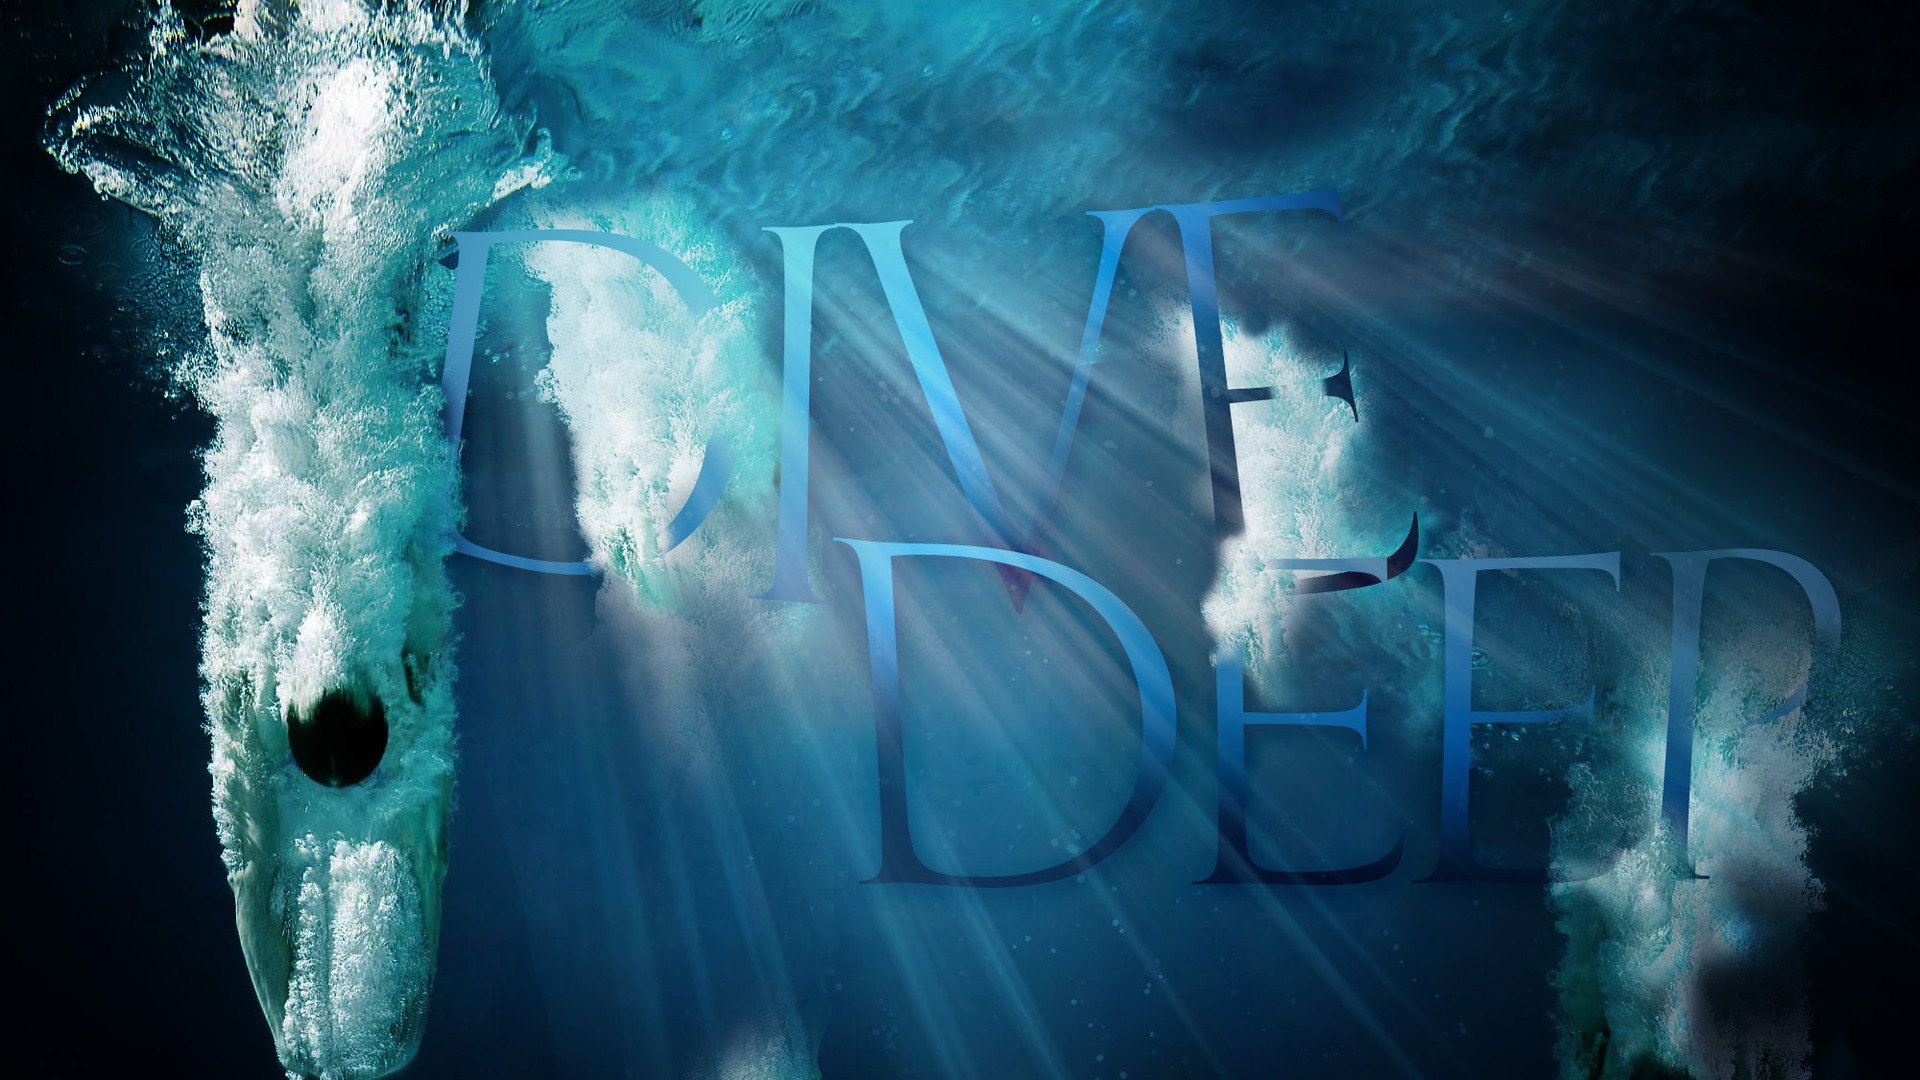 Sunday April 14, 2019 Dive Deep - Pastor Anthony Cox